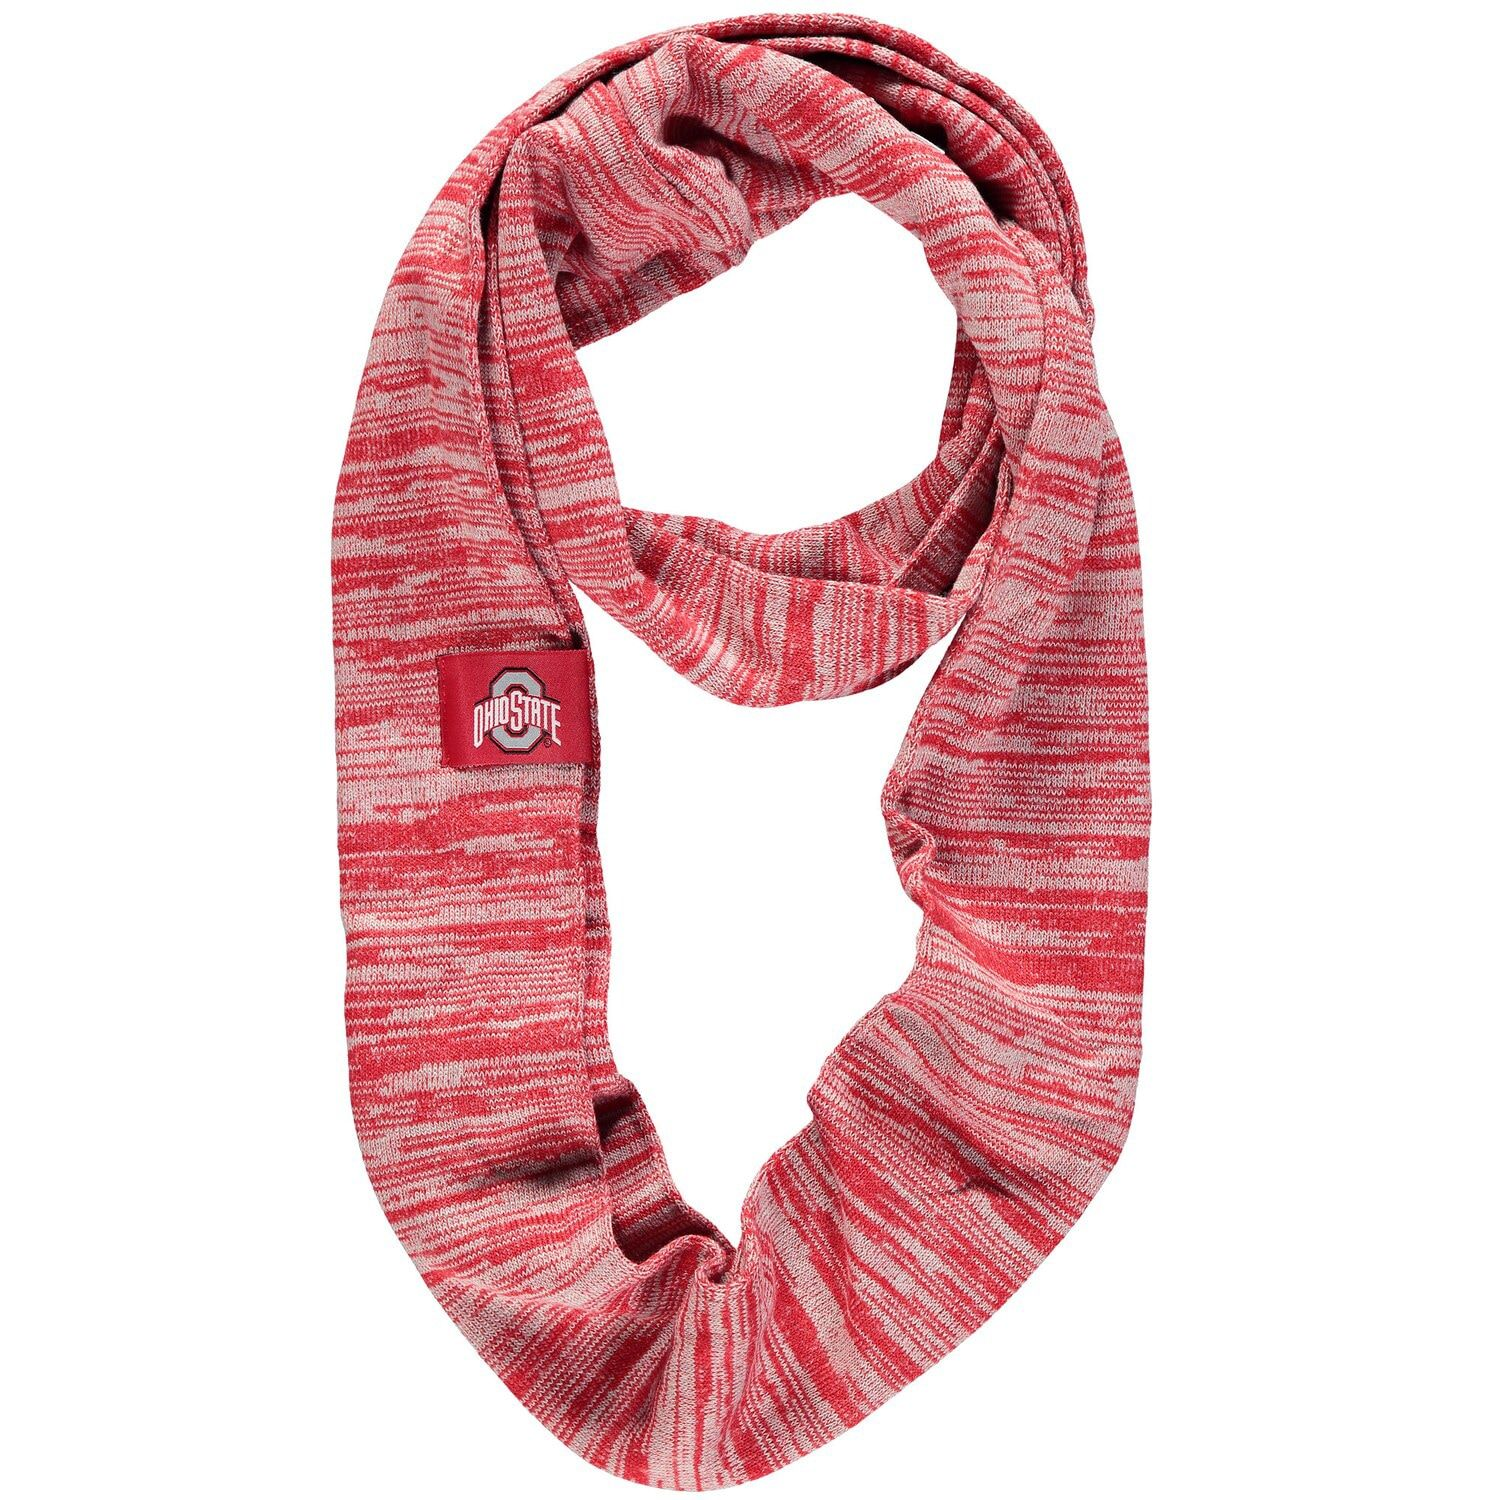 Scarlet Ohio State Buckeyes Colorblend Infinity Scarf